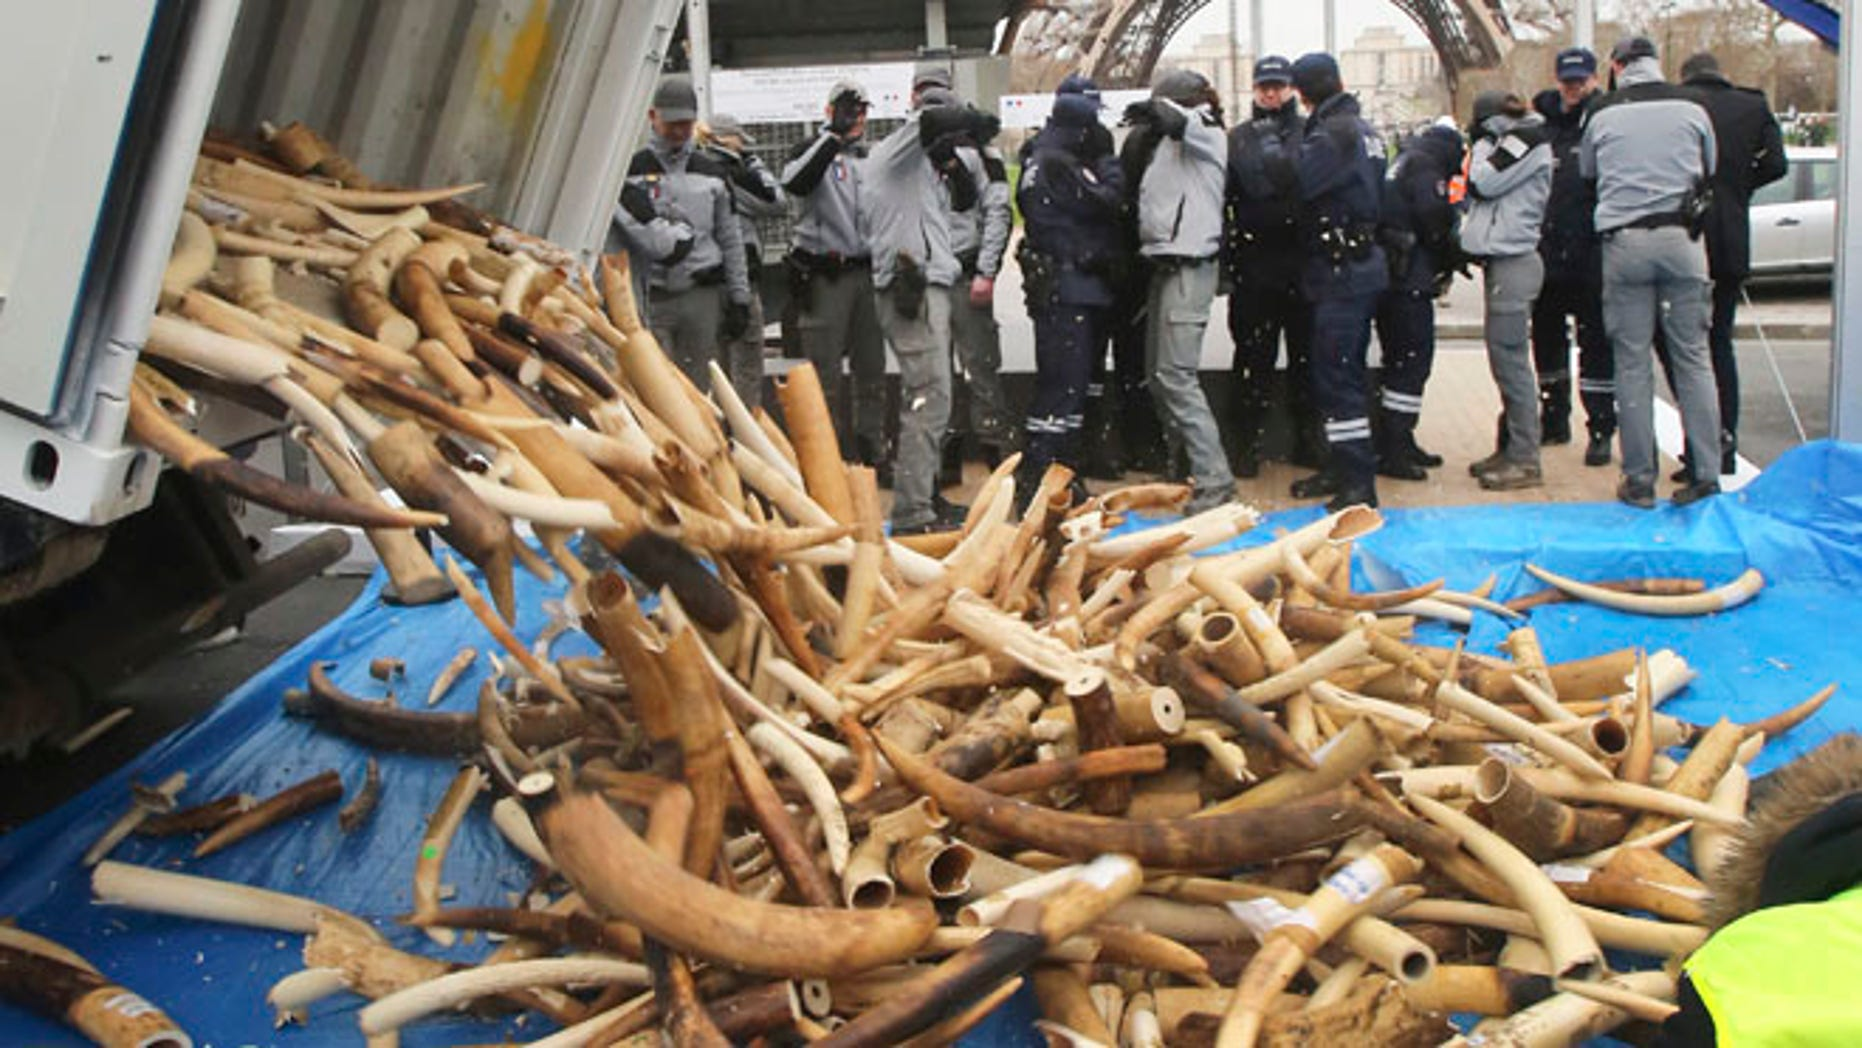 Feb. 6, 2014: French Customs employees protect themselves from fragments as about 698 elephant tusks are unloaded before being crushed into dust, at the foot of the Eiffel Tower in Paris.